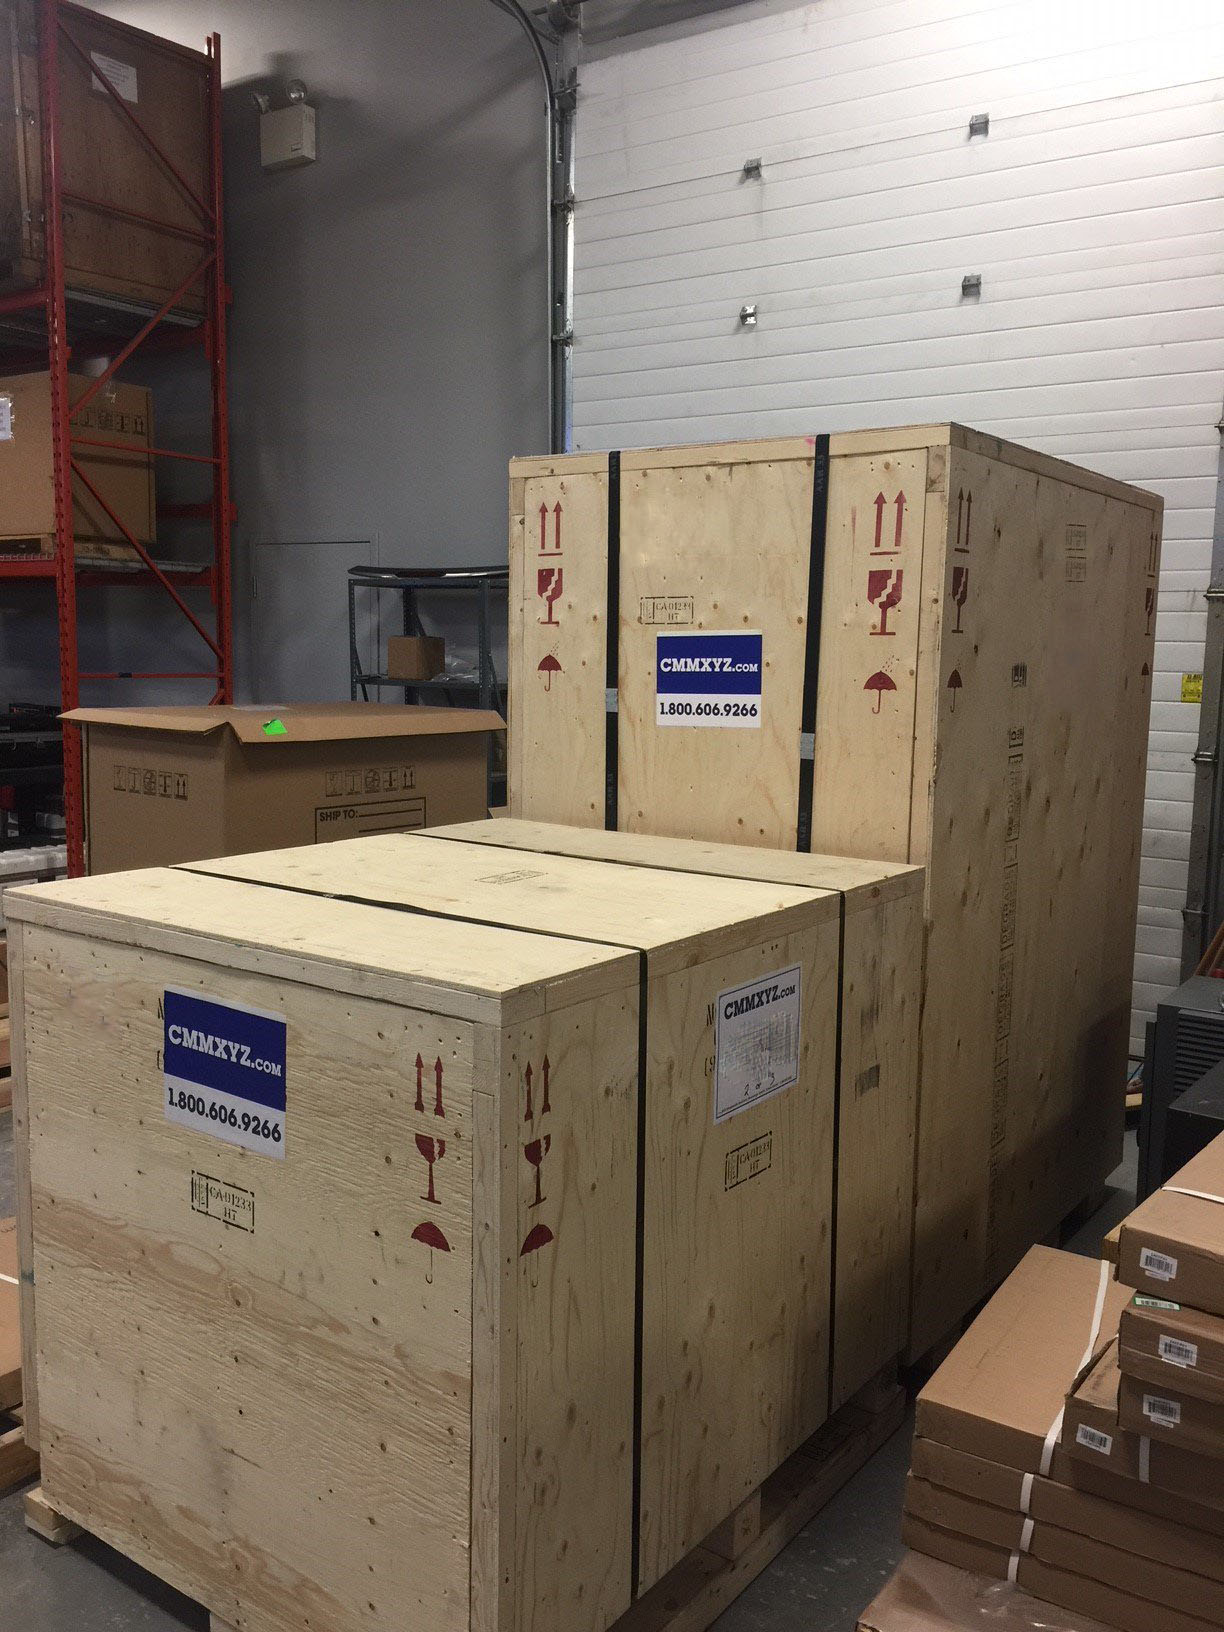 2 CMM crates with CMMXYZ labels